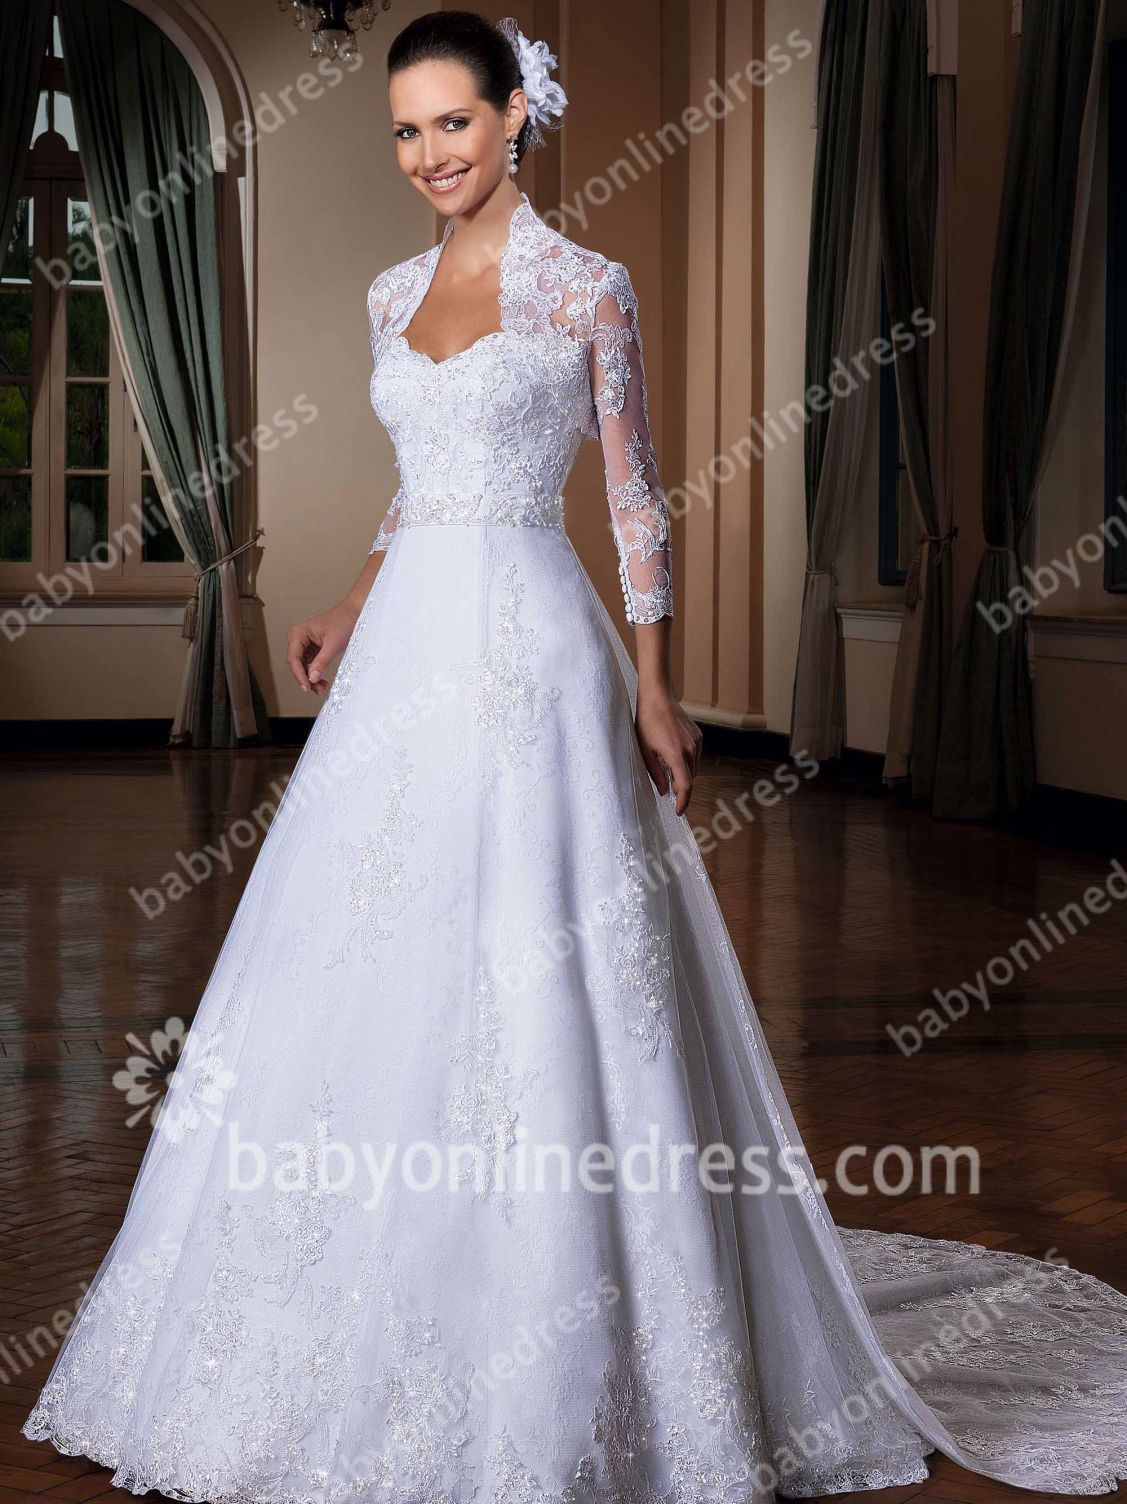 Unique Reasonably Priced Wedding Dresses Check more at http://svesty ...